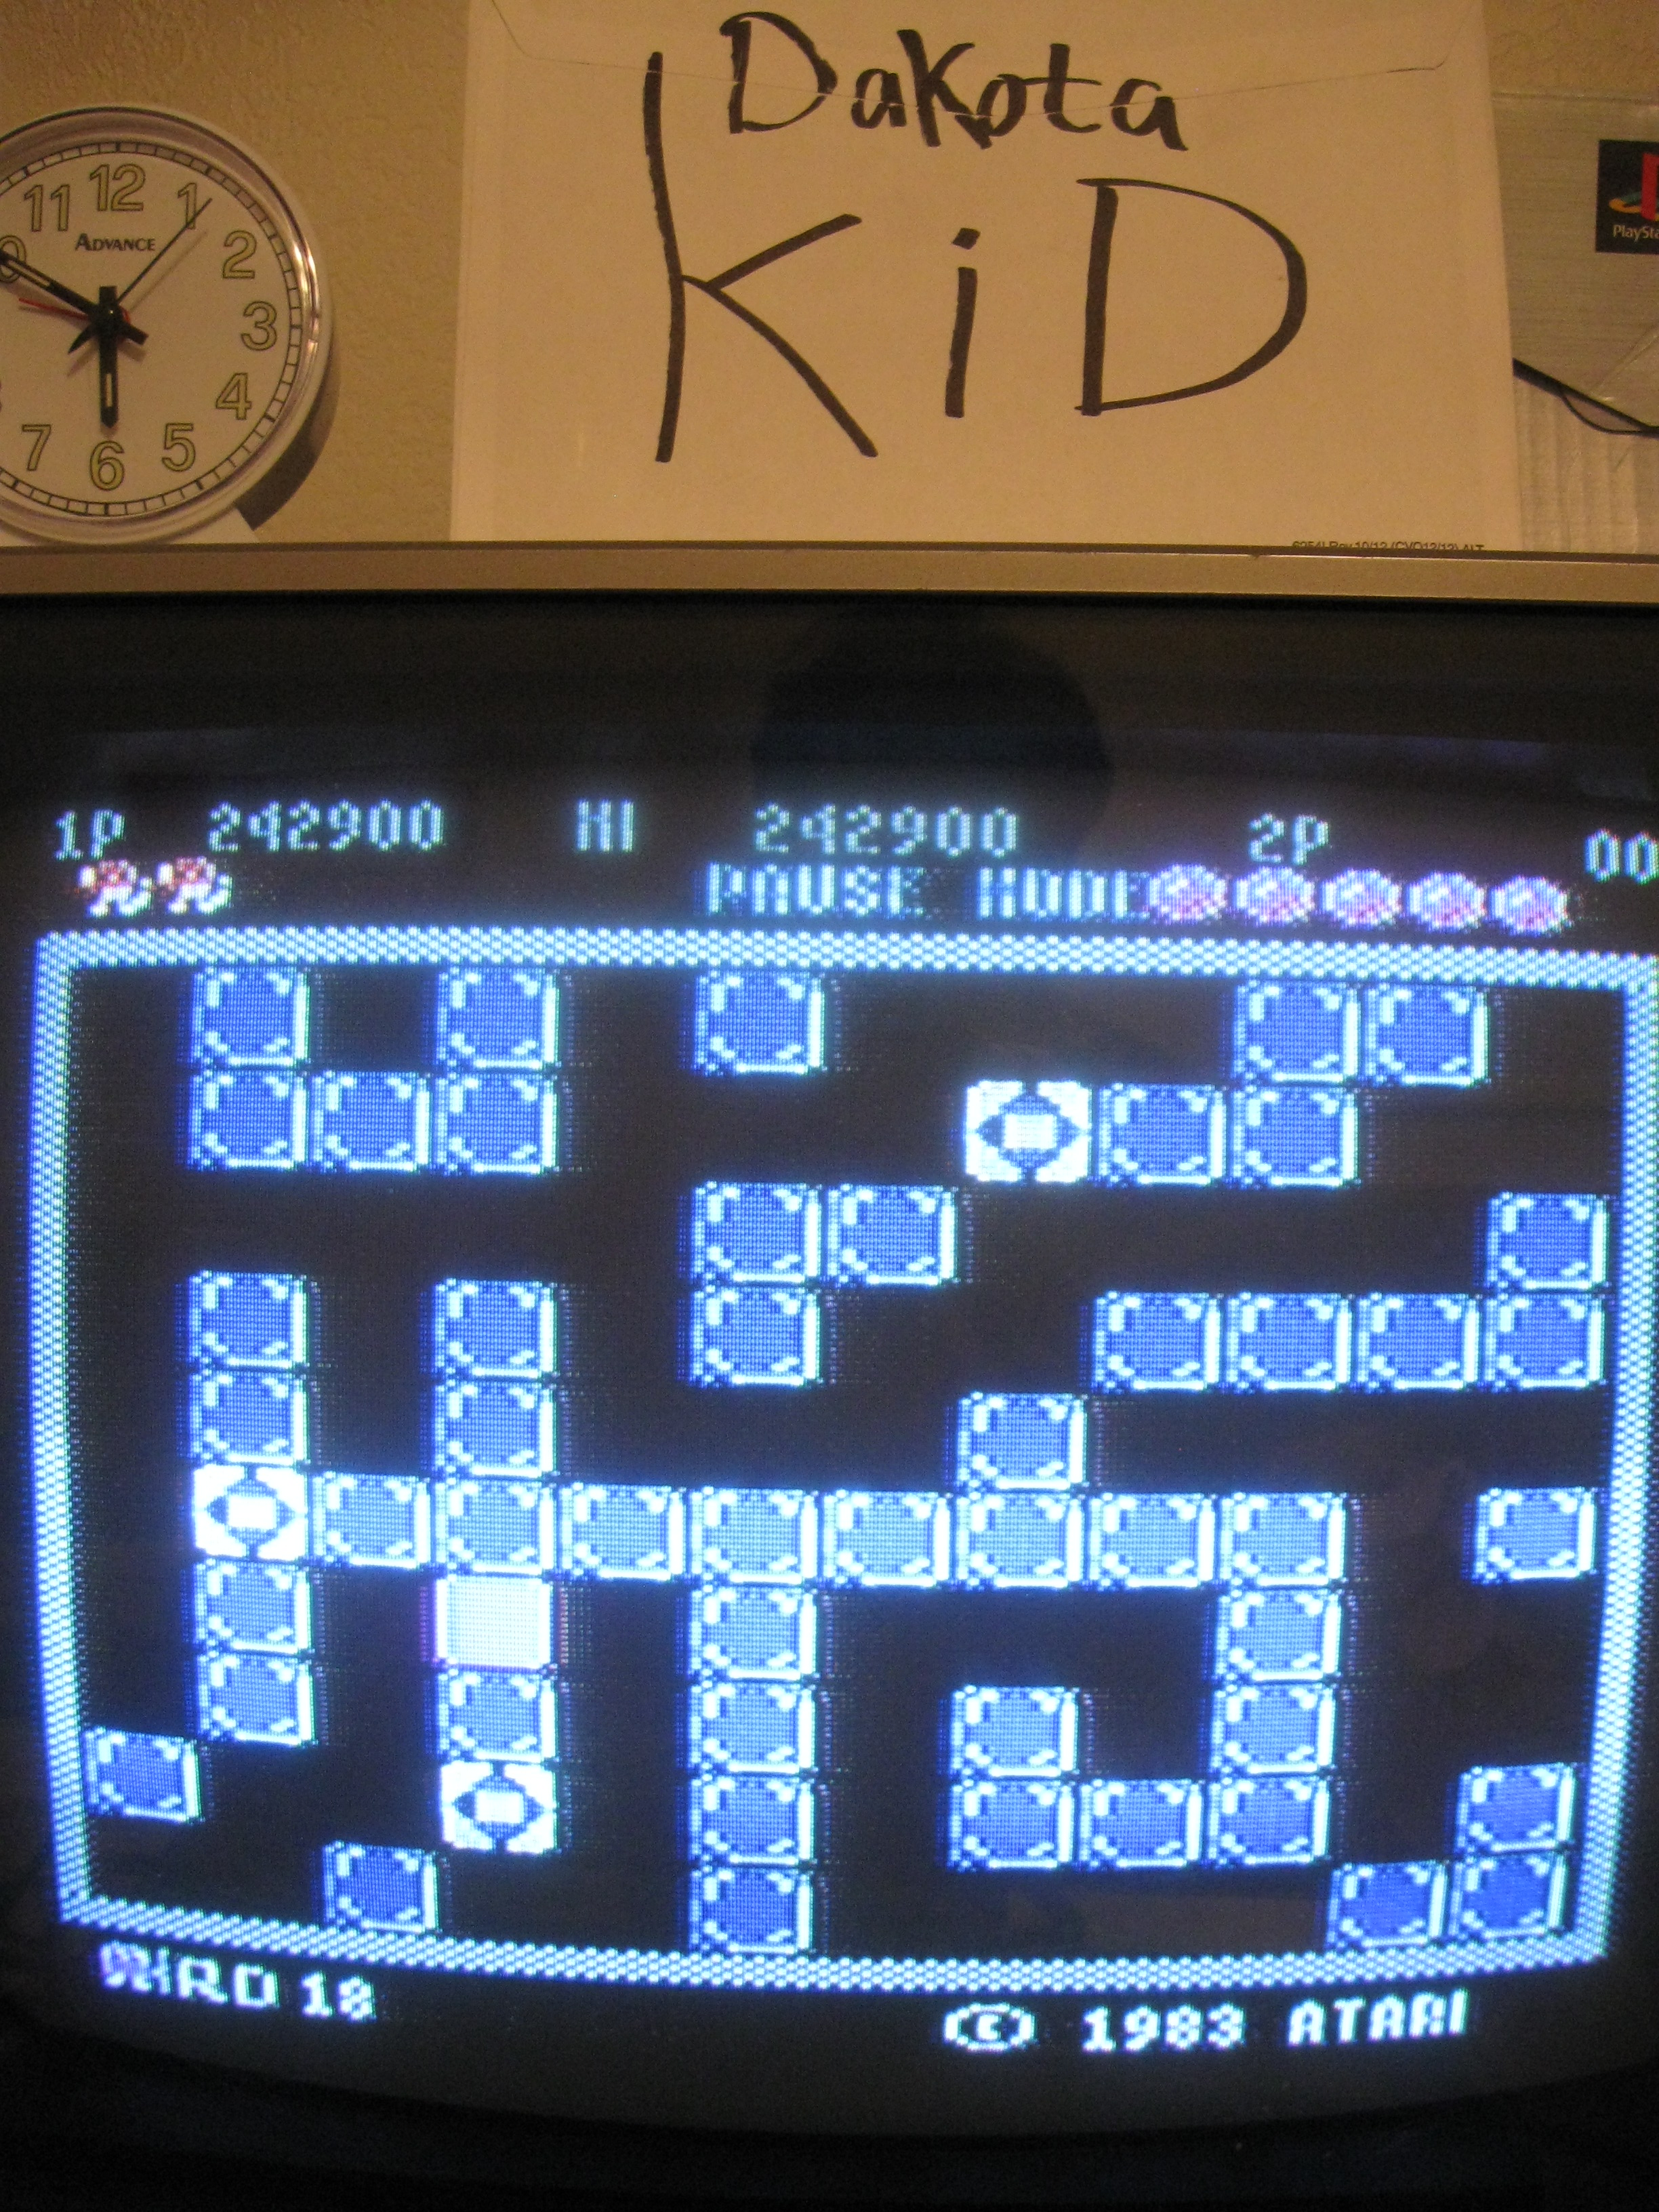 DakotaKid: Pengo (Atari 5200) 318,390 points on 2016-04-13 18:43:47